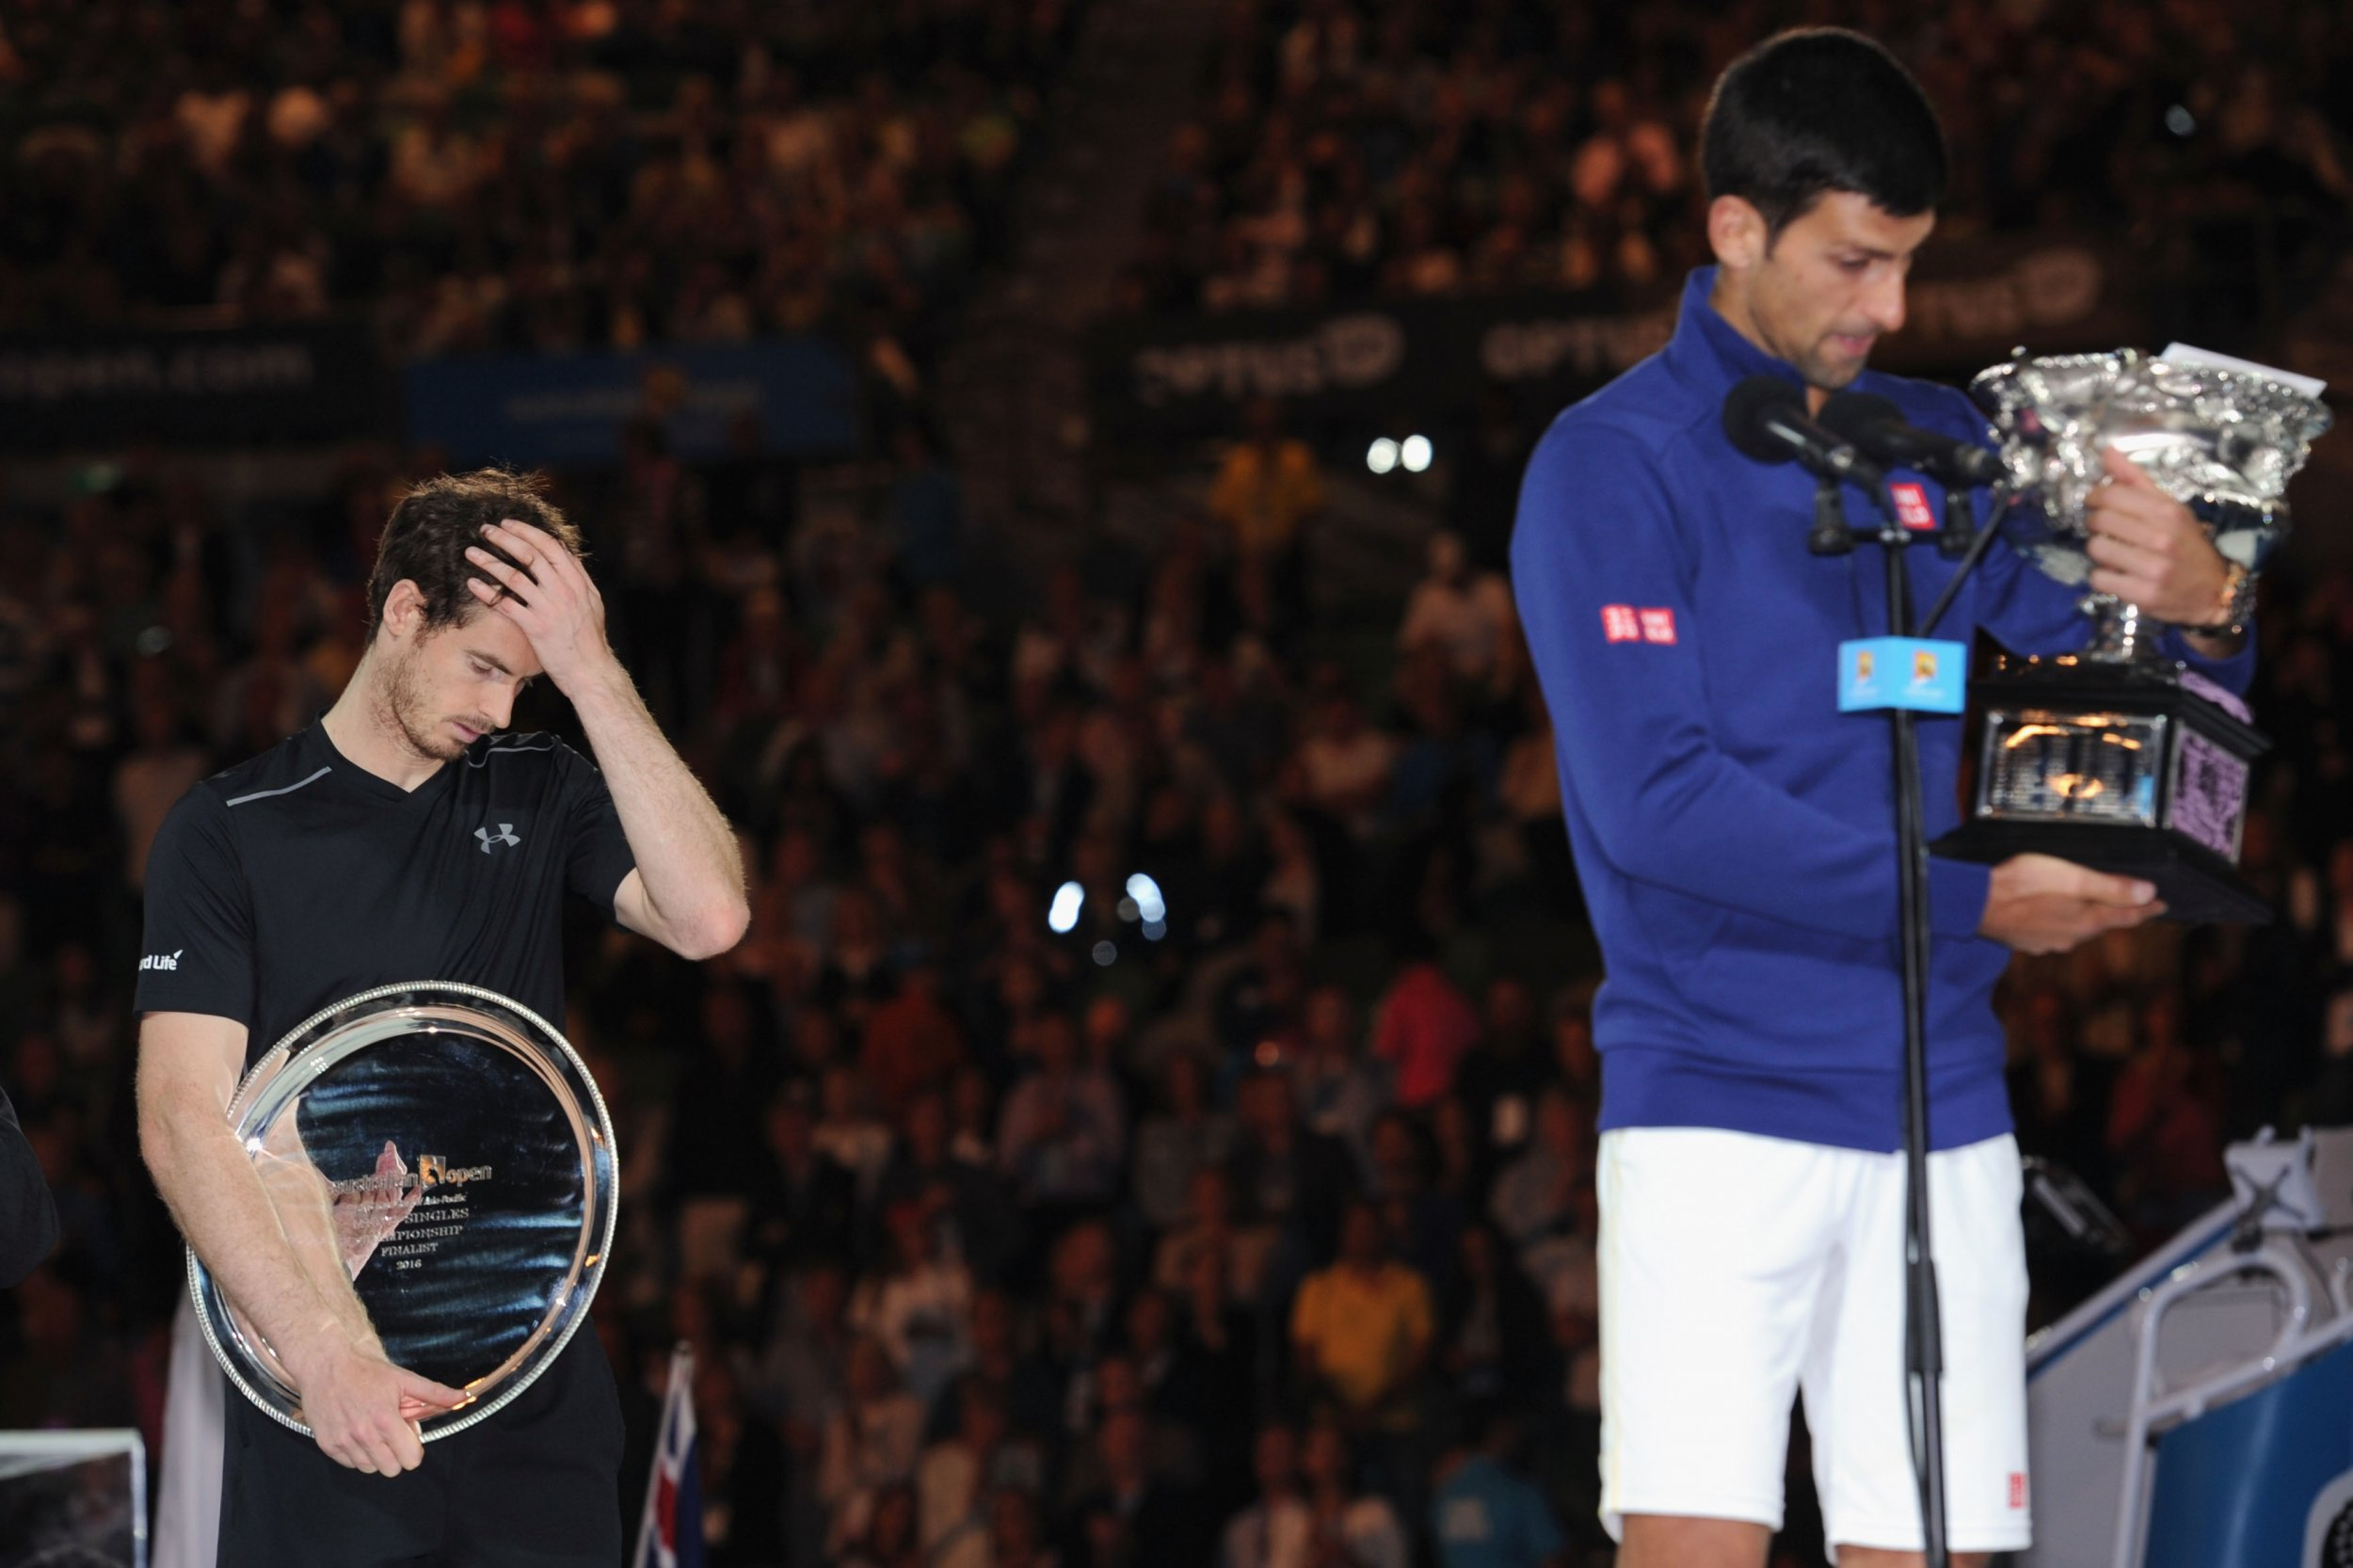 Andy Murray, left, has criticised Novak Djokovic's views on equal pay in tennis.